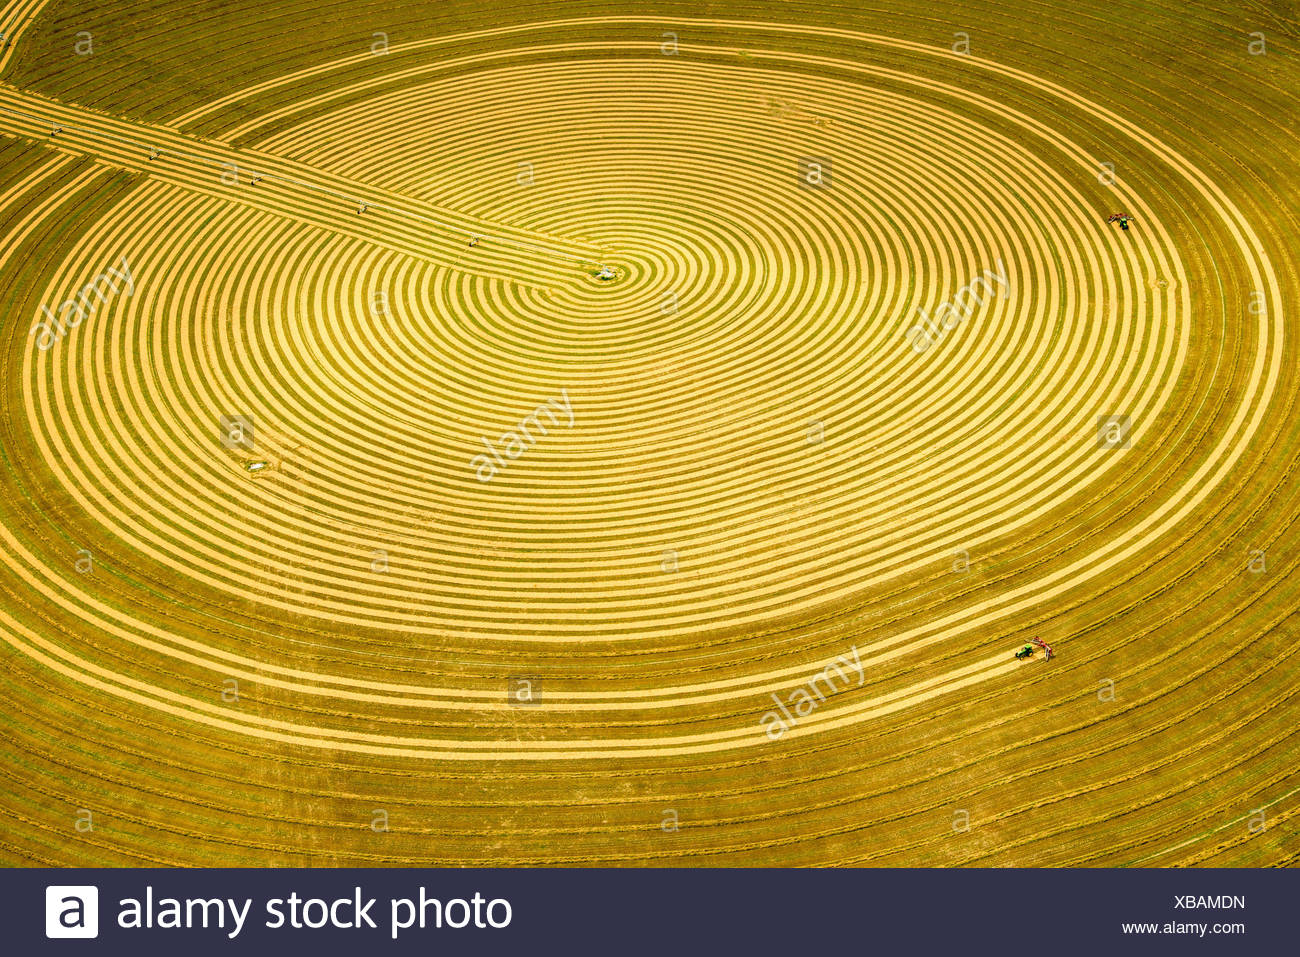 A farmer rakes hay into windrows following the circular pattern of pivot irrigation. - Stock Image